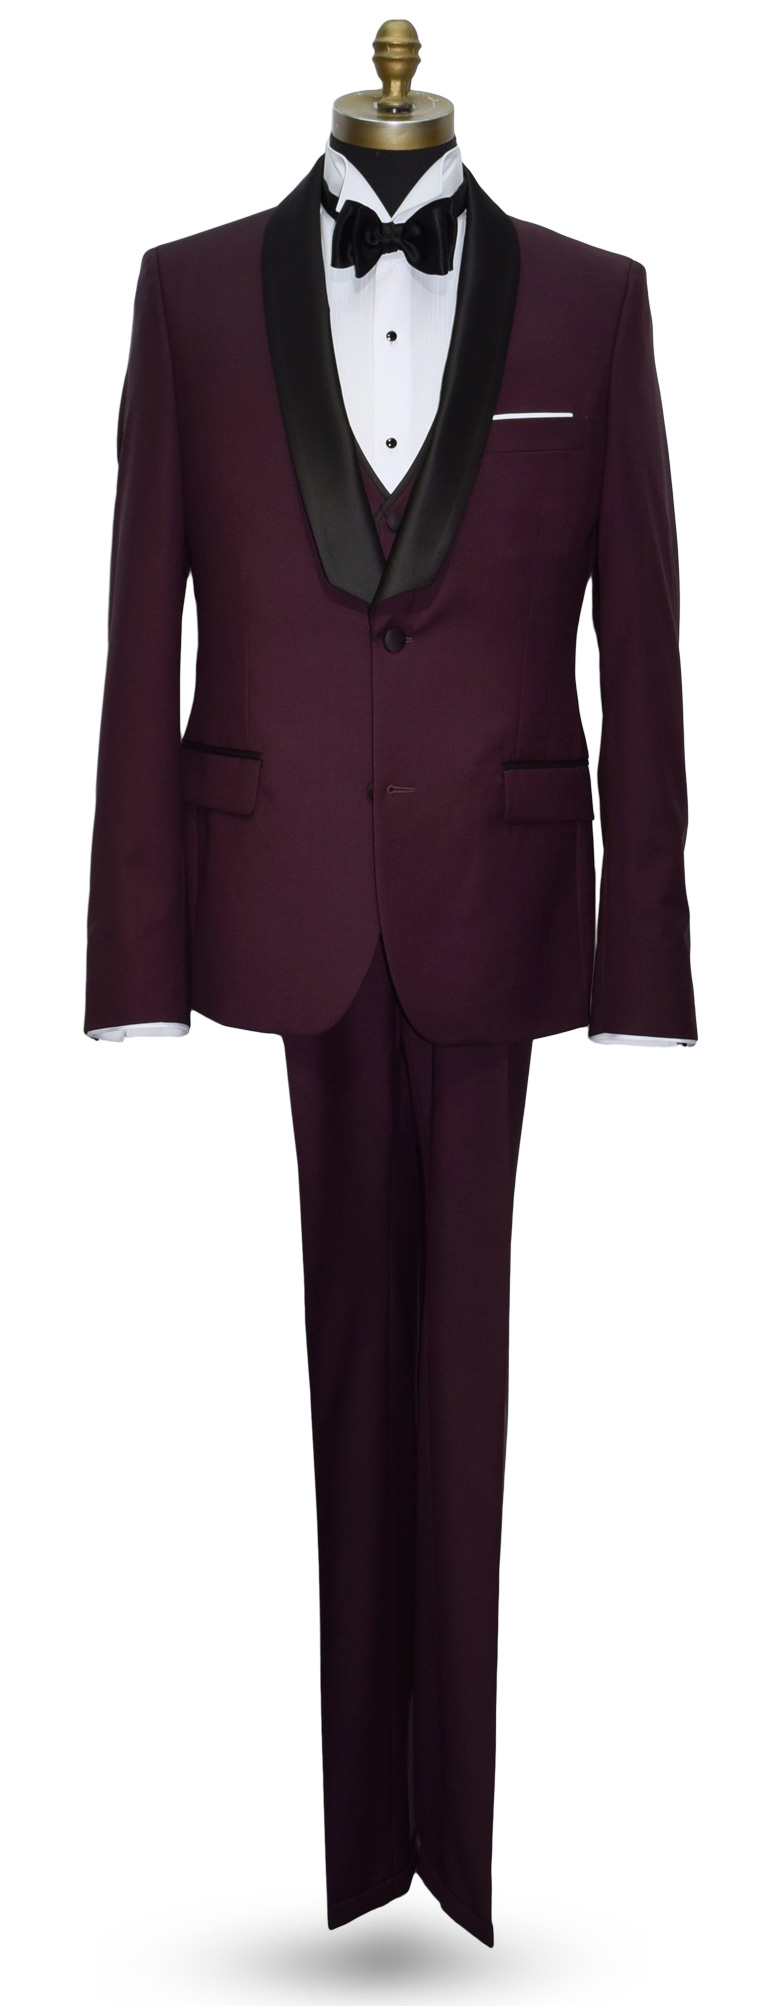 Burgundy Shawl Collar Tuxedo Ultra Slim Fit 3 Piece with Vest